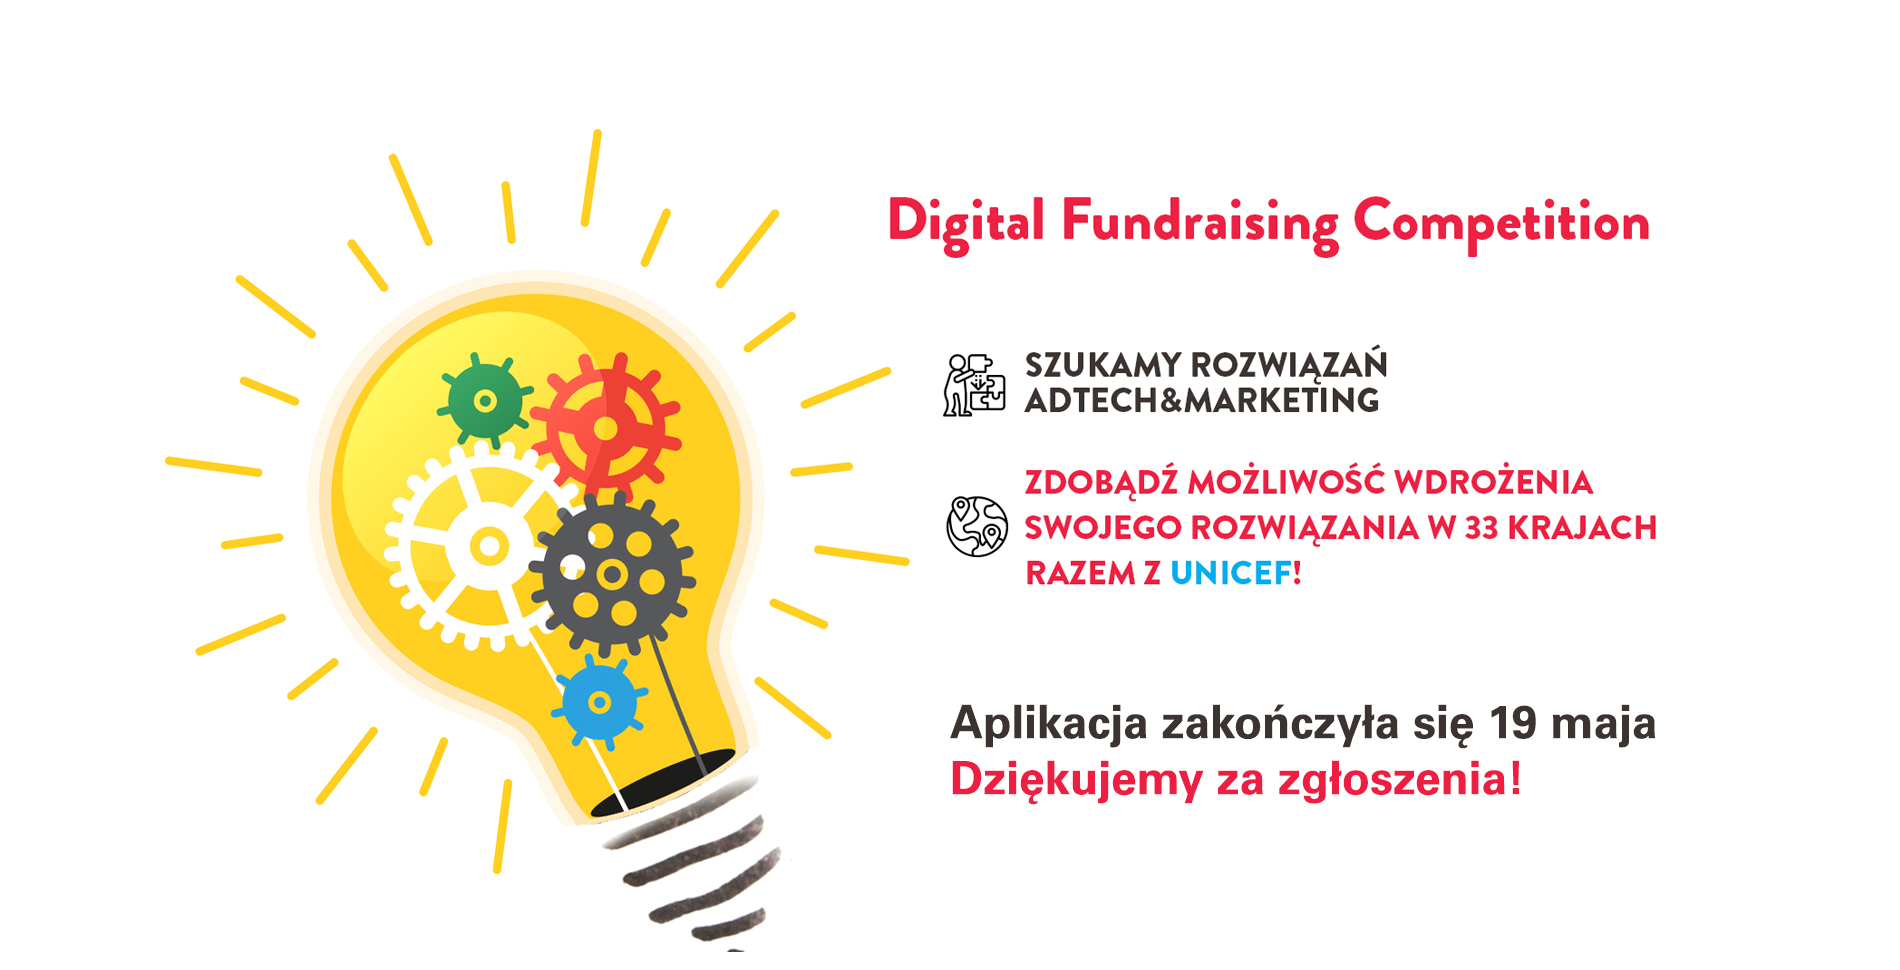 Digital Fundraising Competition